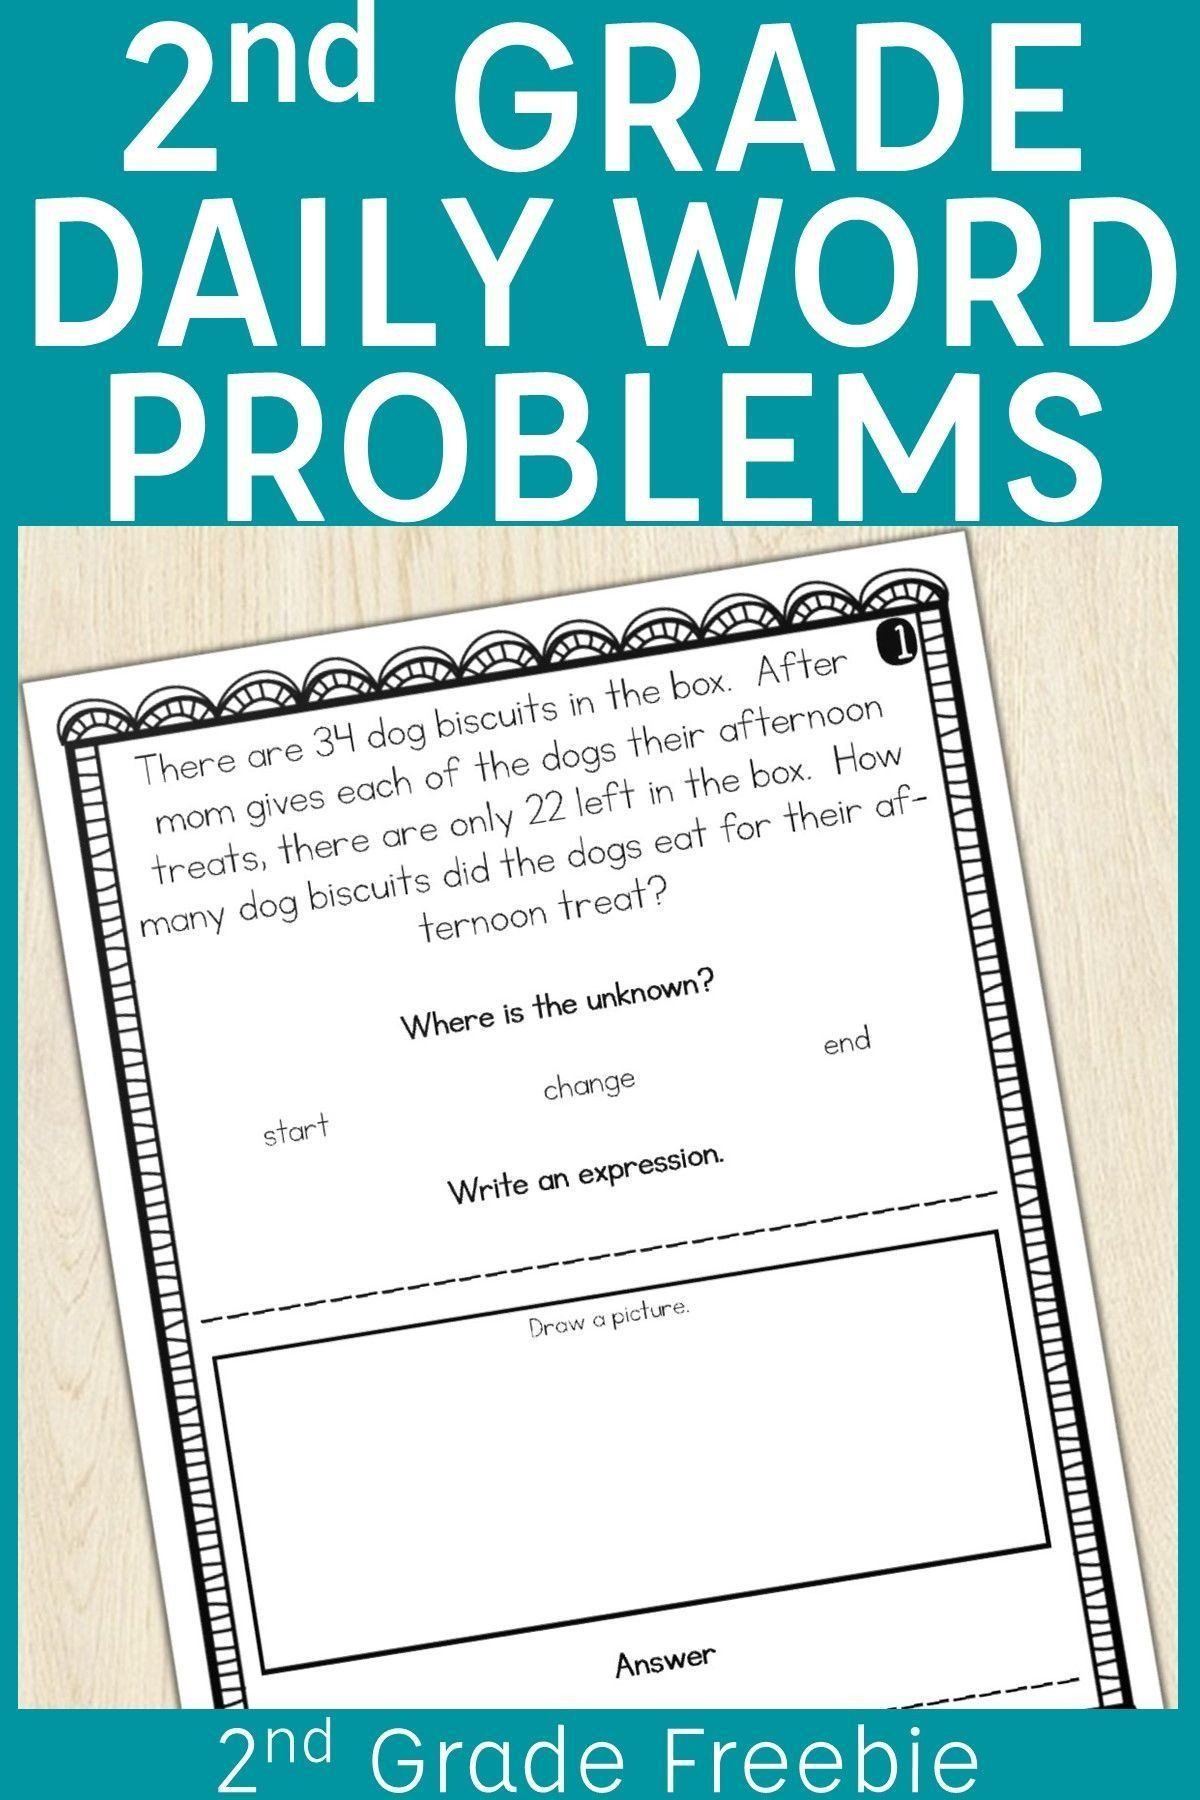 Story Retell Worksheet 2nd Grade   Printable Worksheets and Activities for  Teachers [ 1800 x 1200 Pixel ]